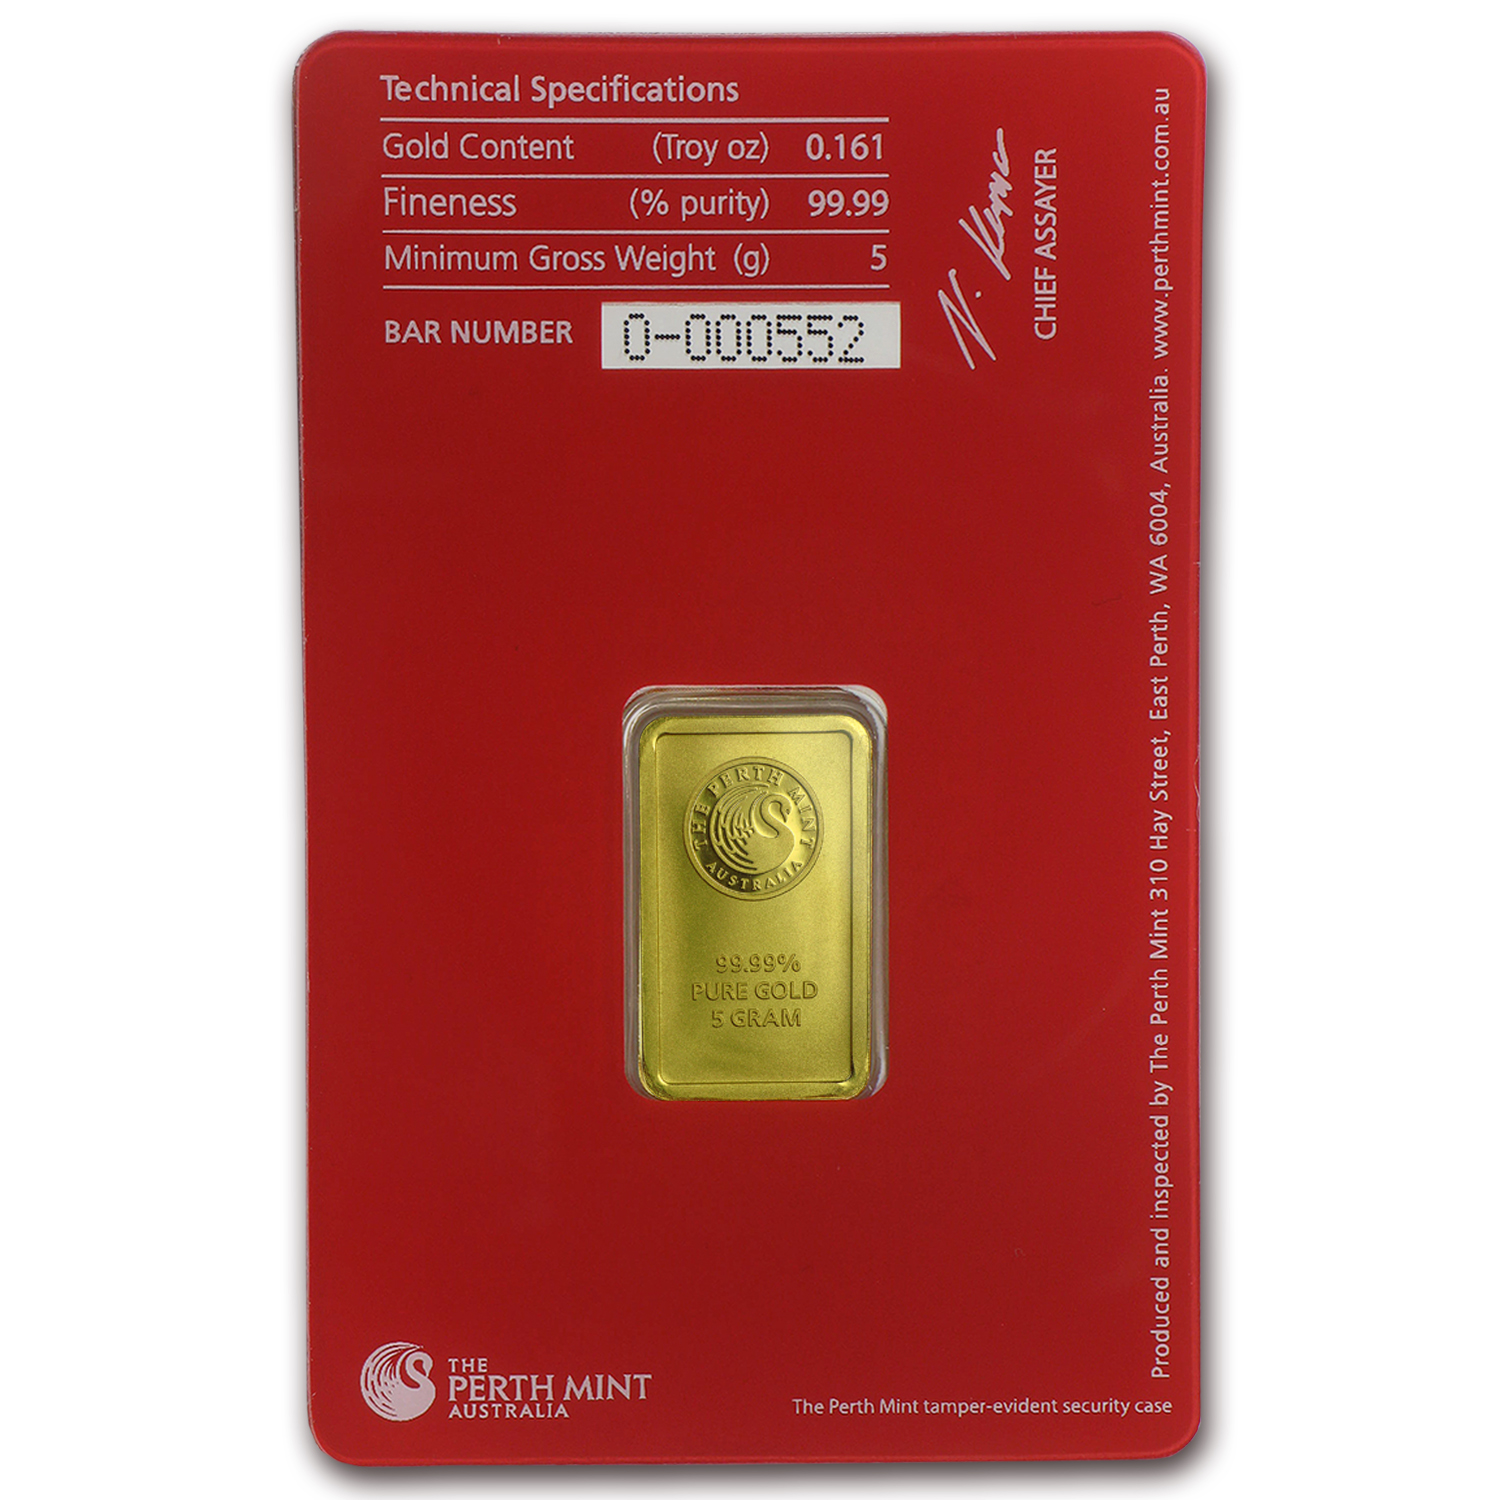 5 gram Gold Bar - Perth Mint Oriana (In Assay) - Walmart.com